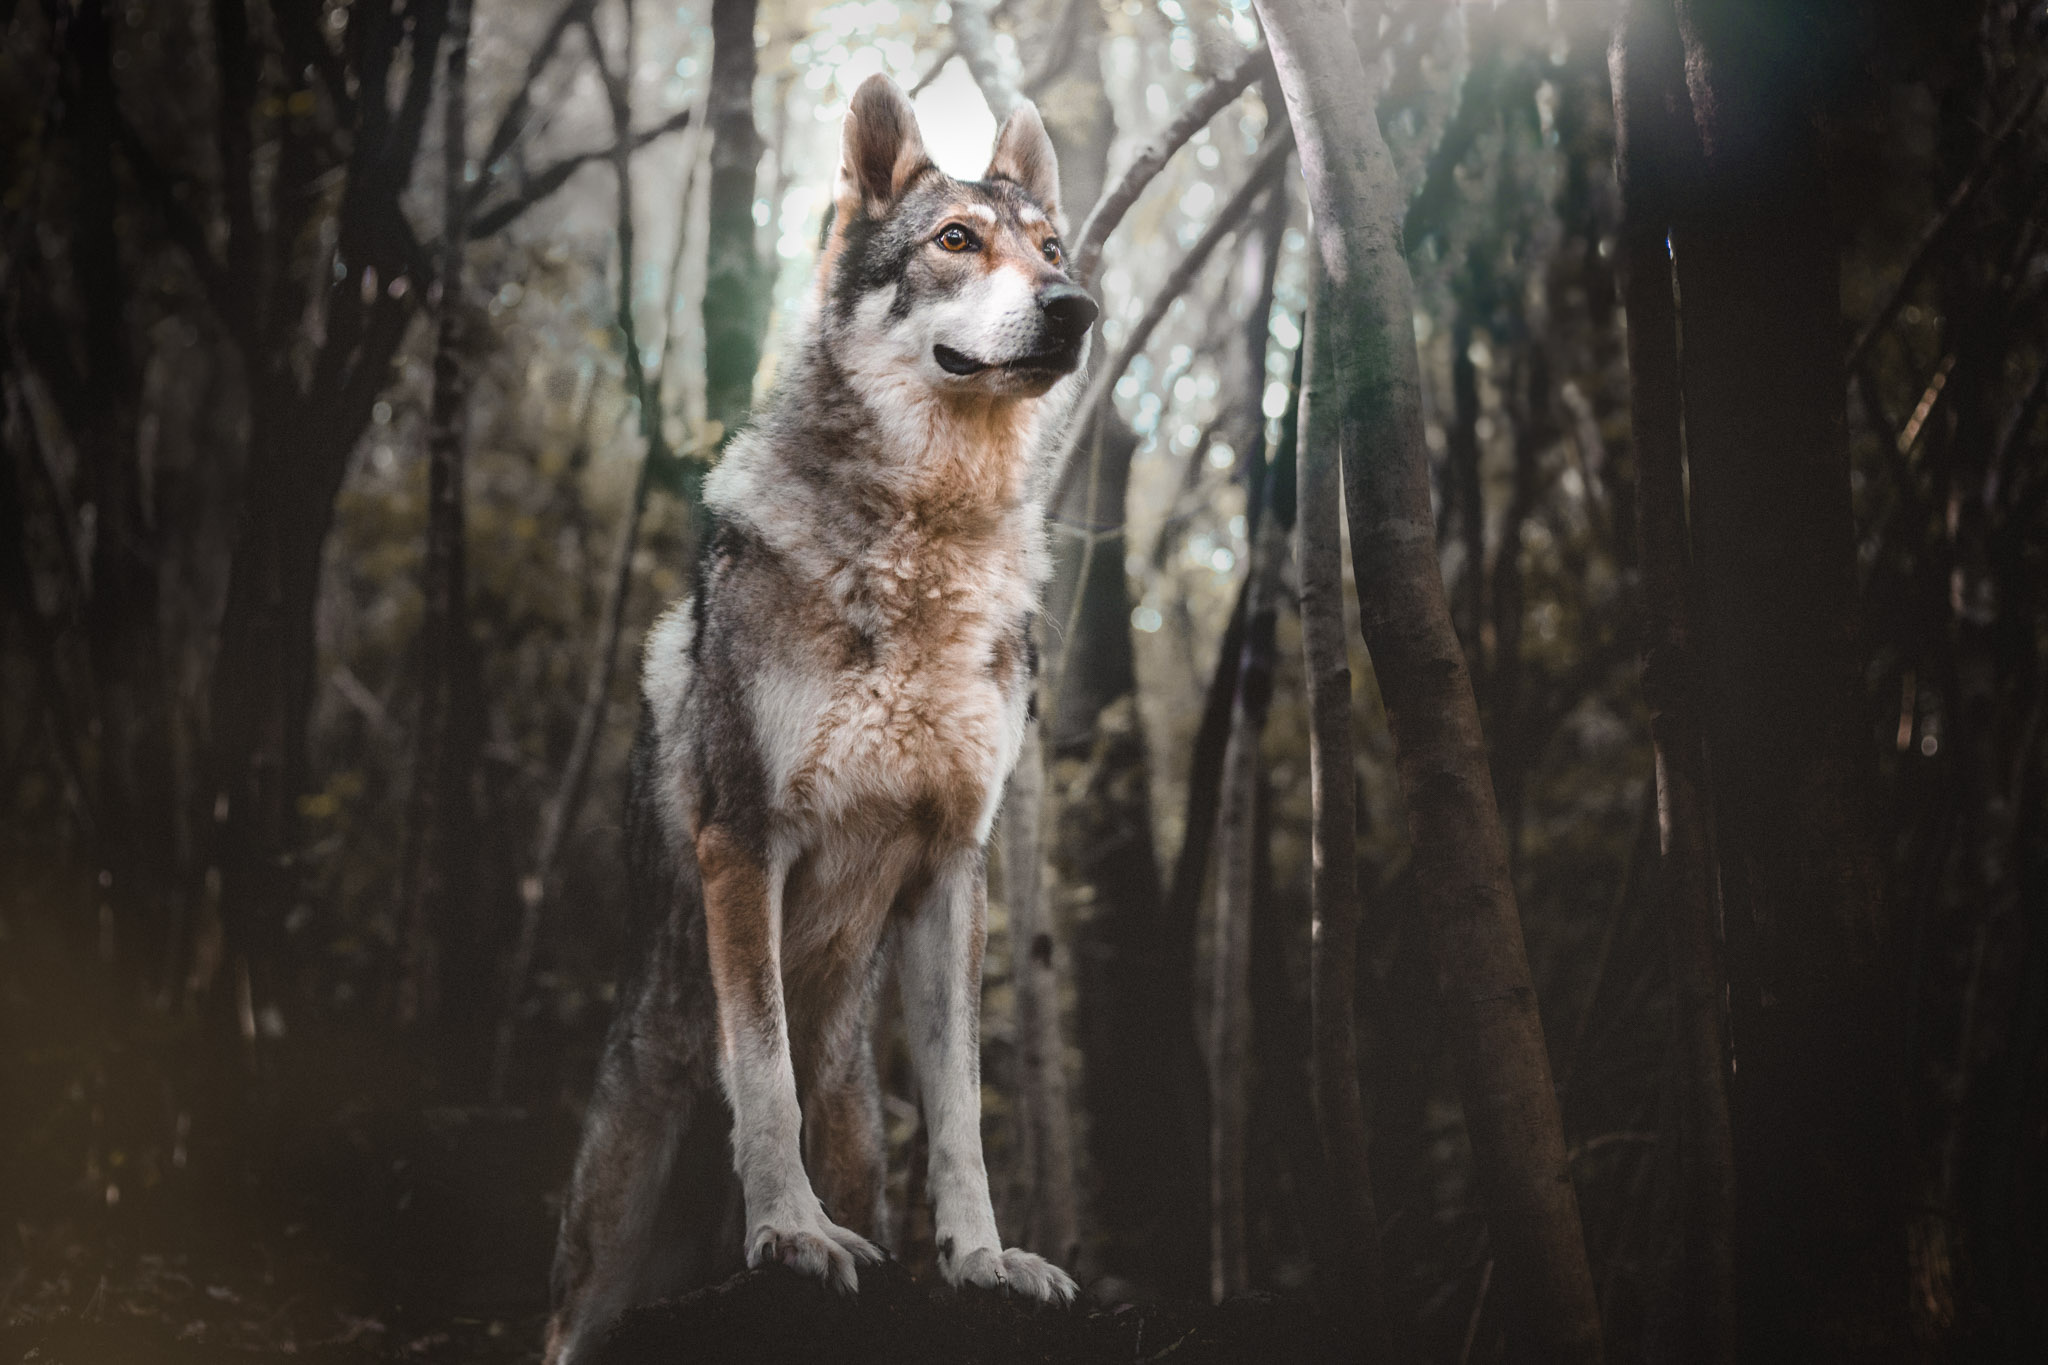 gegenwind-photography-copenhagen-wolfdog-the-northdogs-06-2